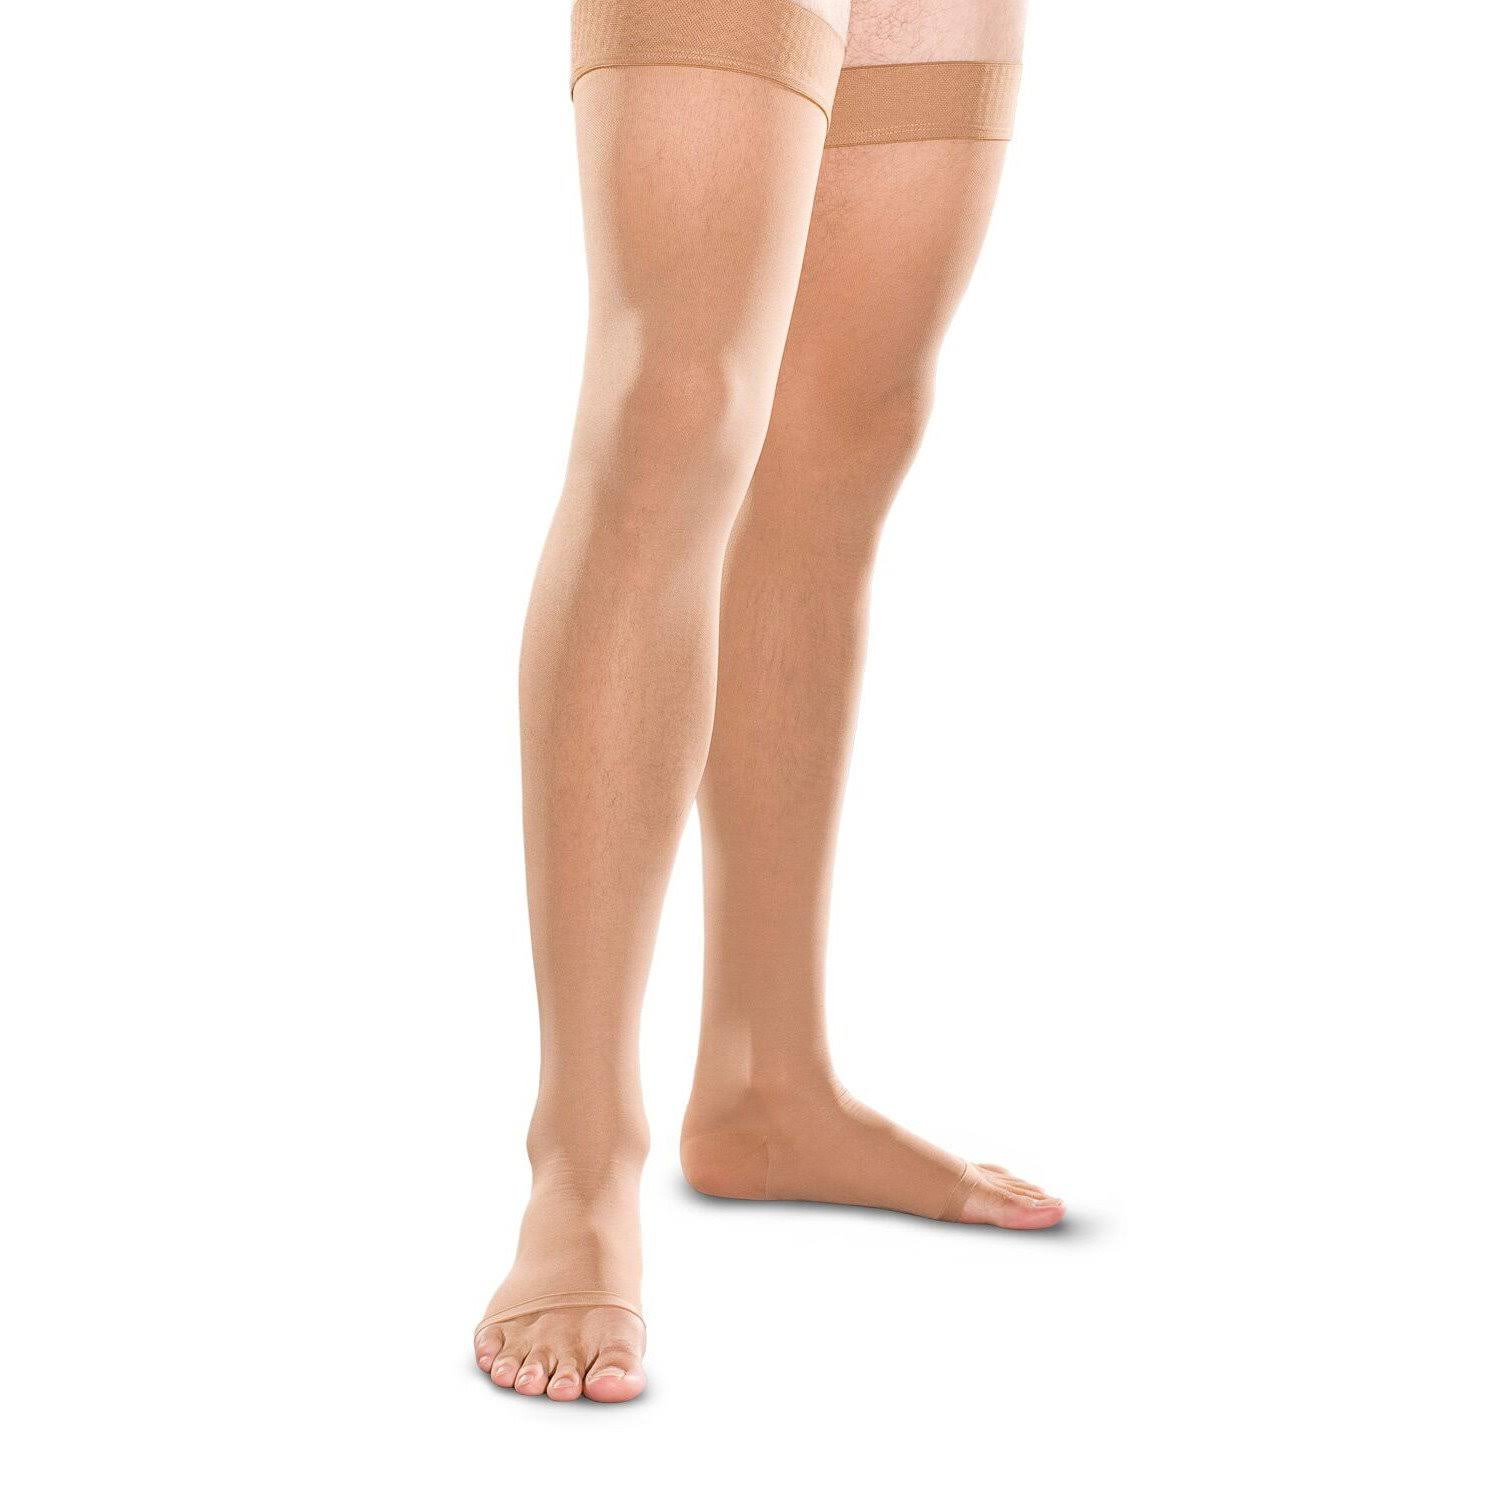 Therafirm 20-30 mmHg Thigh High Open Toe - Sand